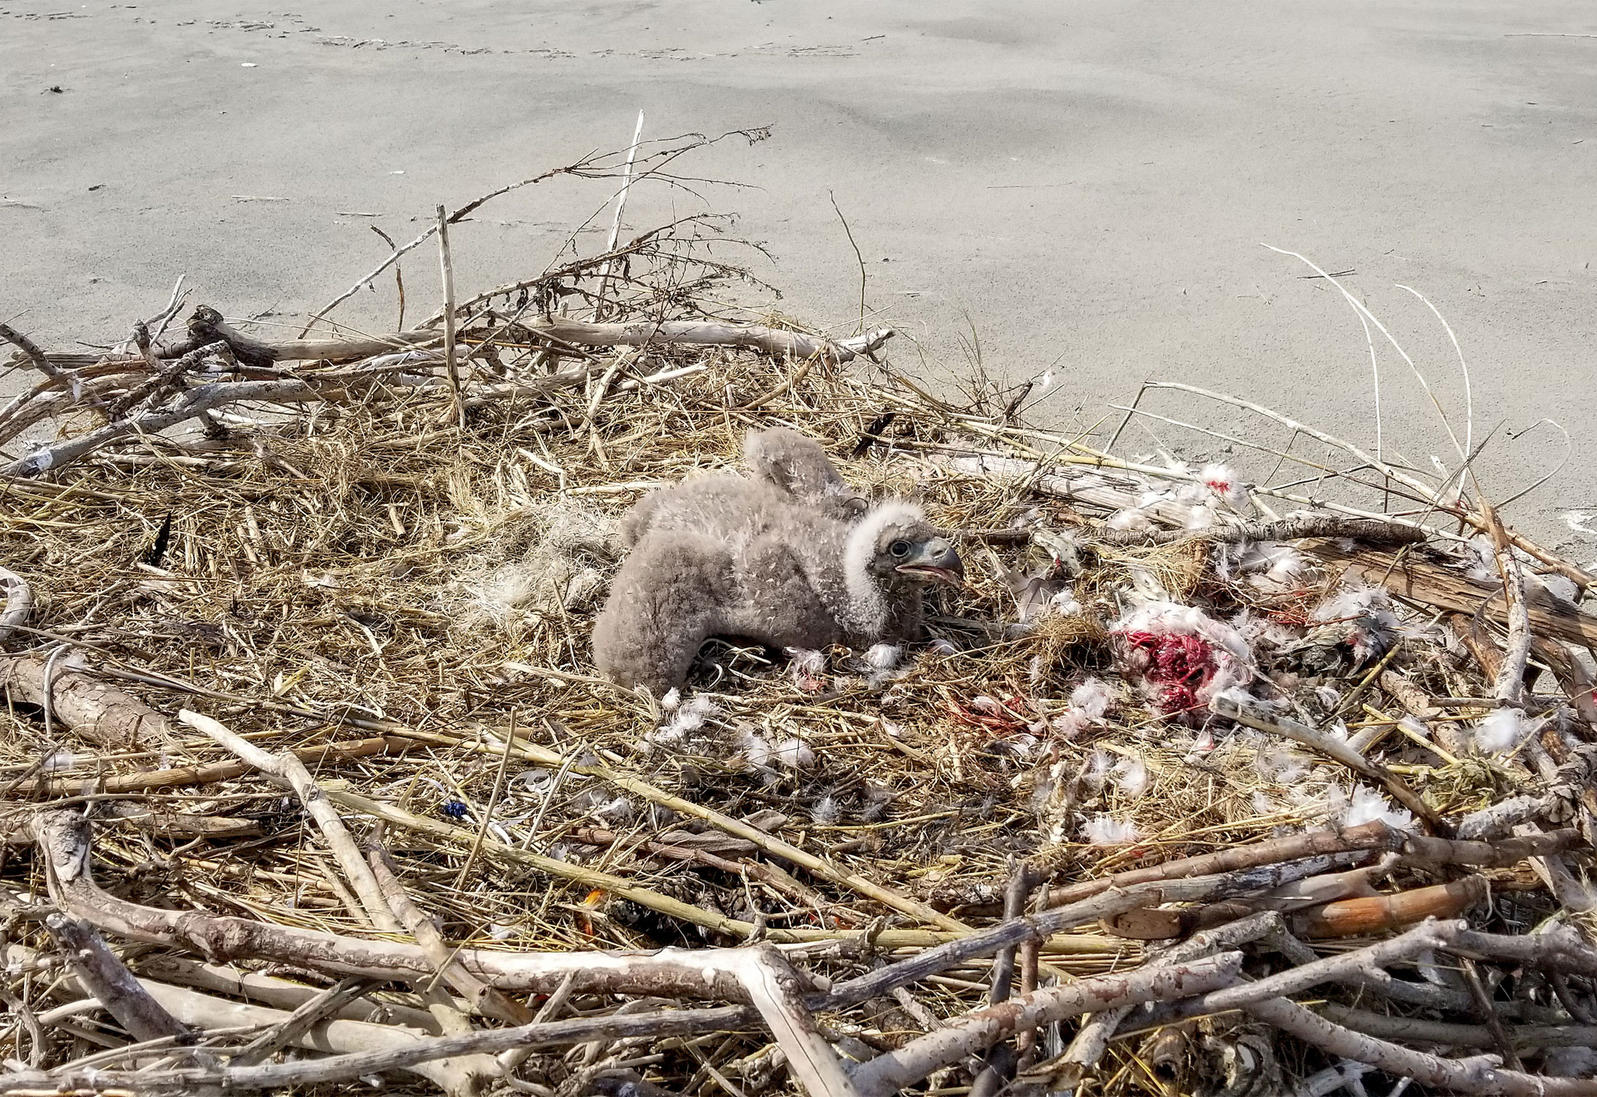 Of the two new beach nests this breeding season, only one saw an eaglet successfully fledge. Alex Wilke